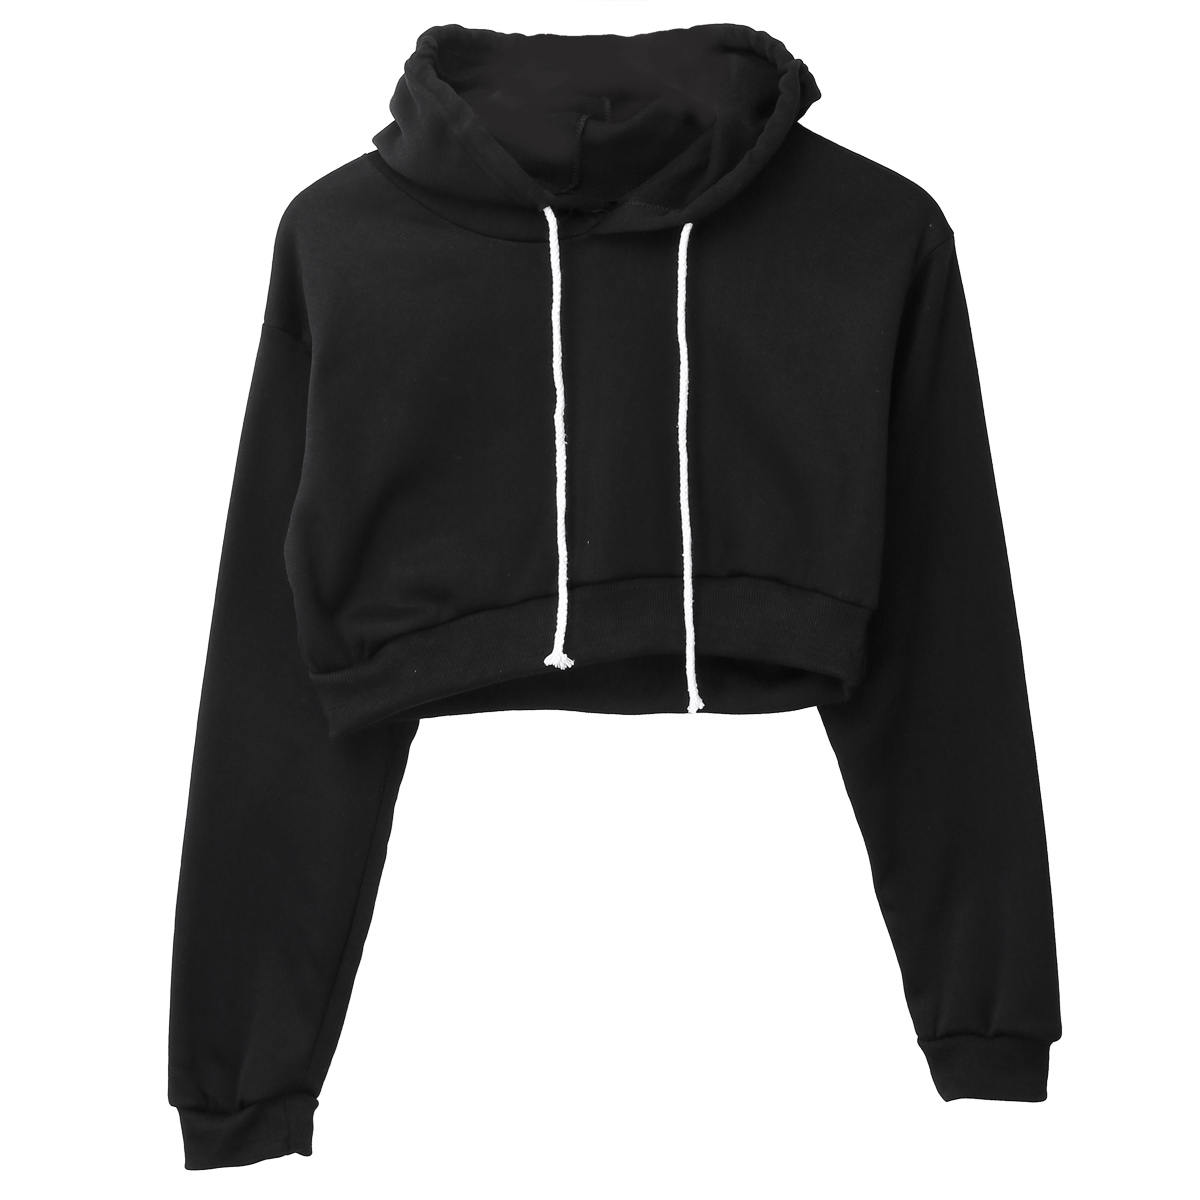 Generic Mens Tops Hoodie Zipper Solid Color Long Sleeve Sweatshirt Jackets